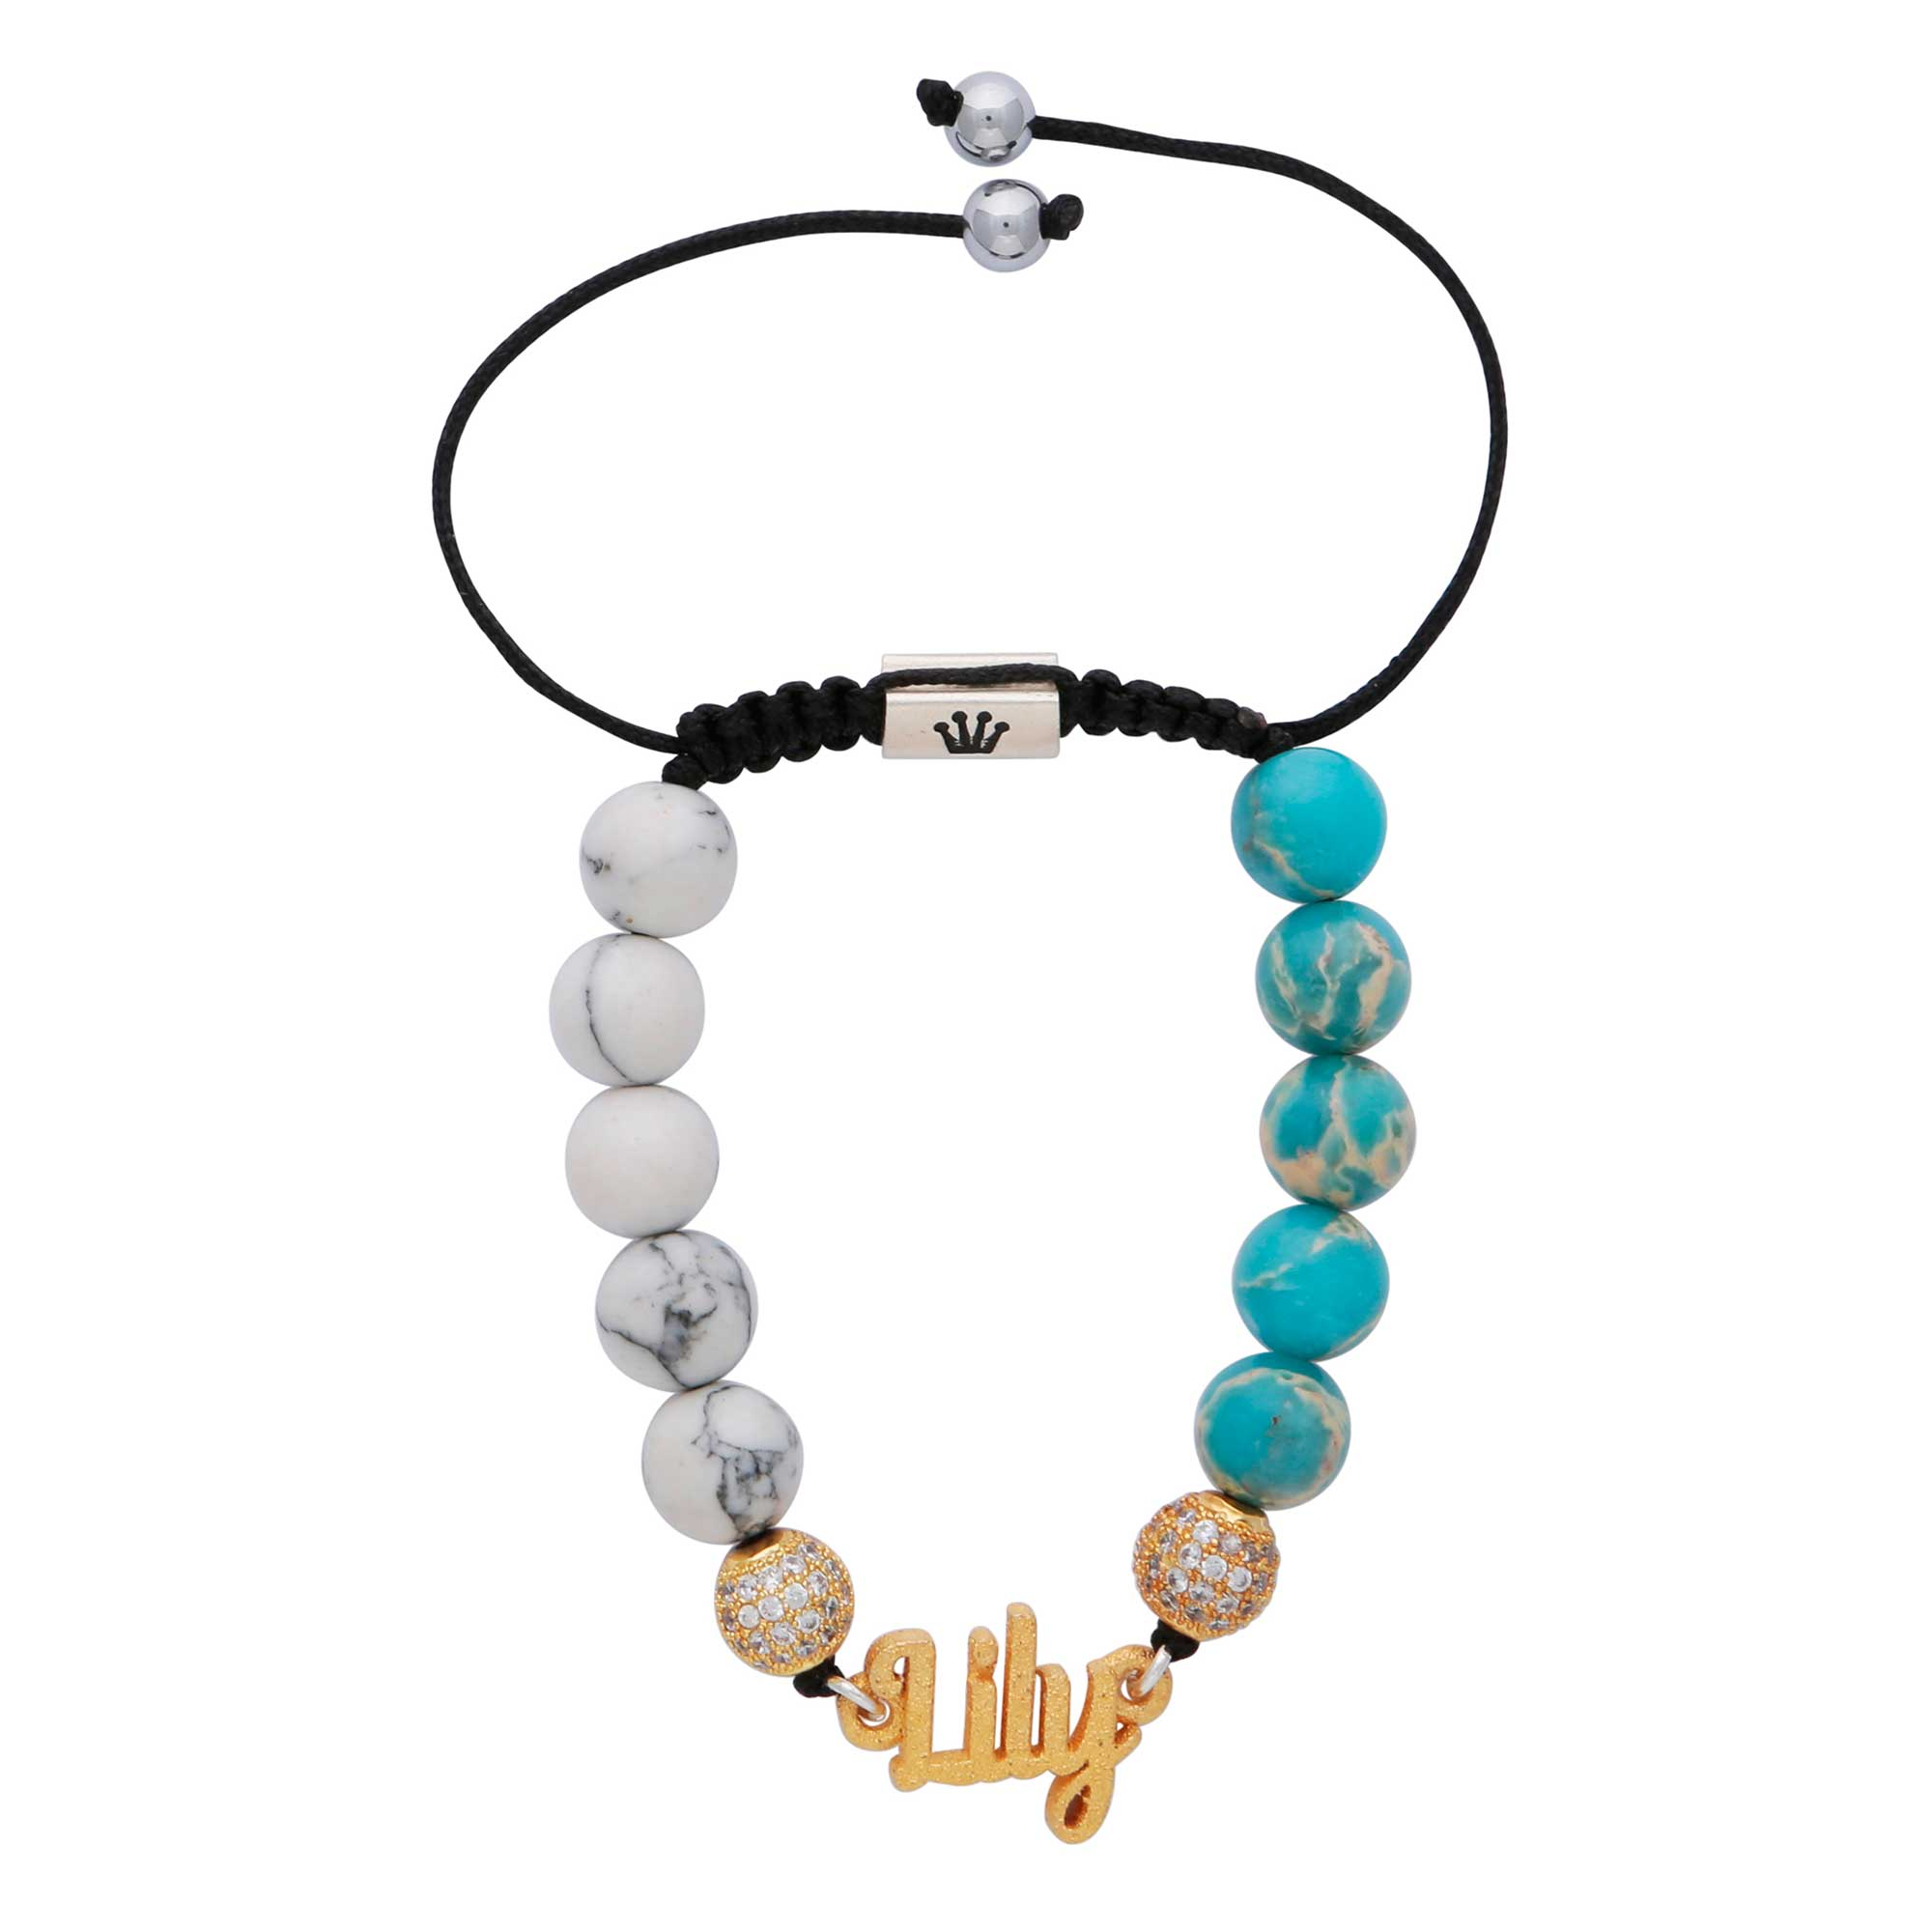 pendant mala love bead beads bracelet stone round lock gongxumei yoga from natural jasper product bracelets dalmatian prayer